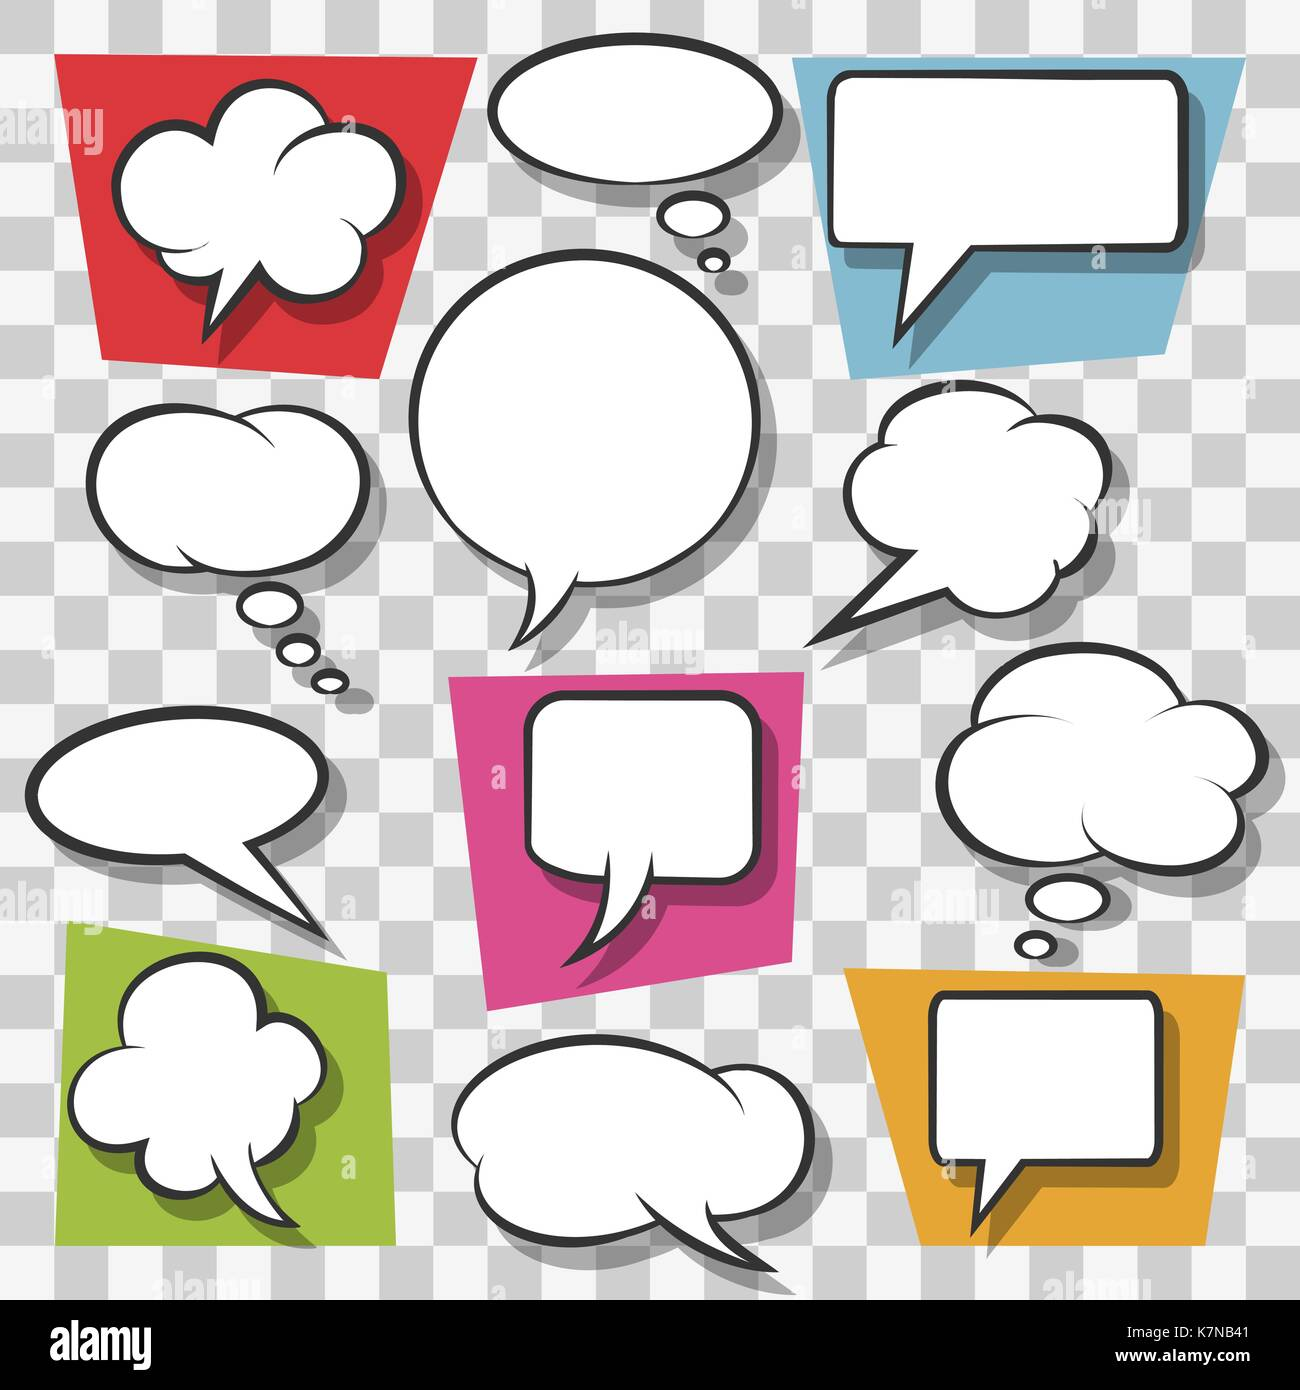 Blank speech bubbles drawn in pop art style on transparent background. Vector illustration Stock Vector